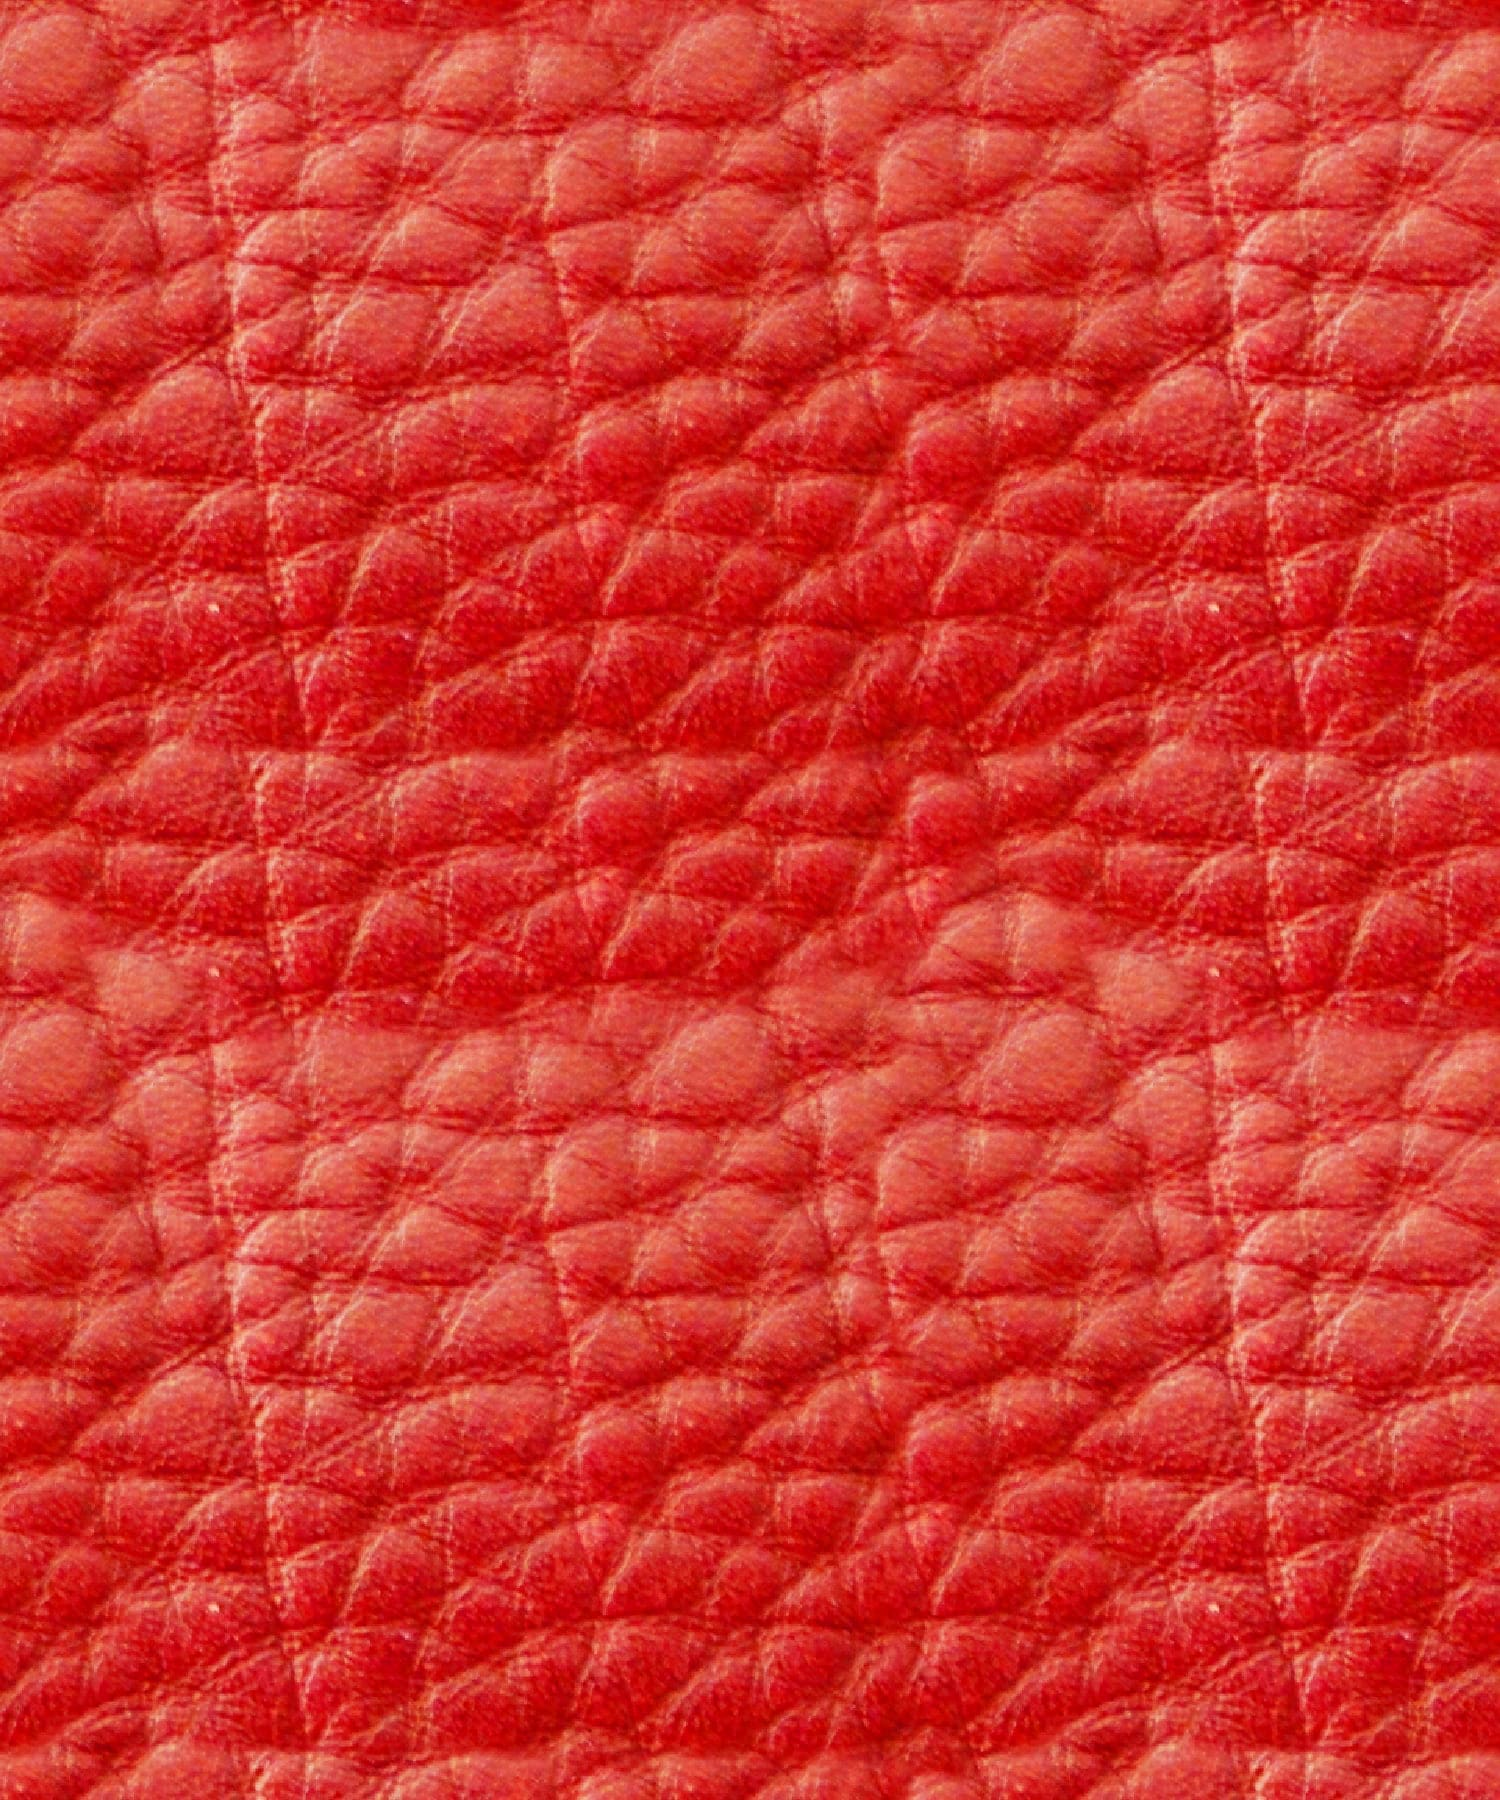 Red Leather Background Free Download